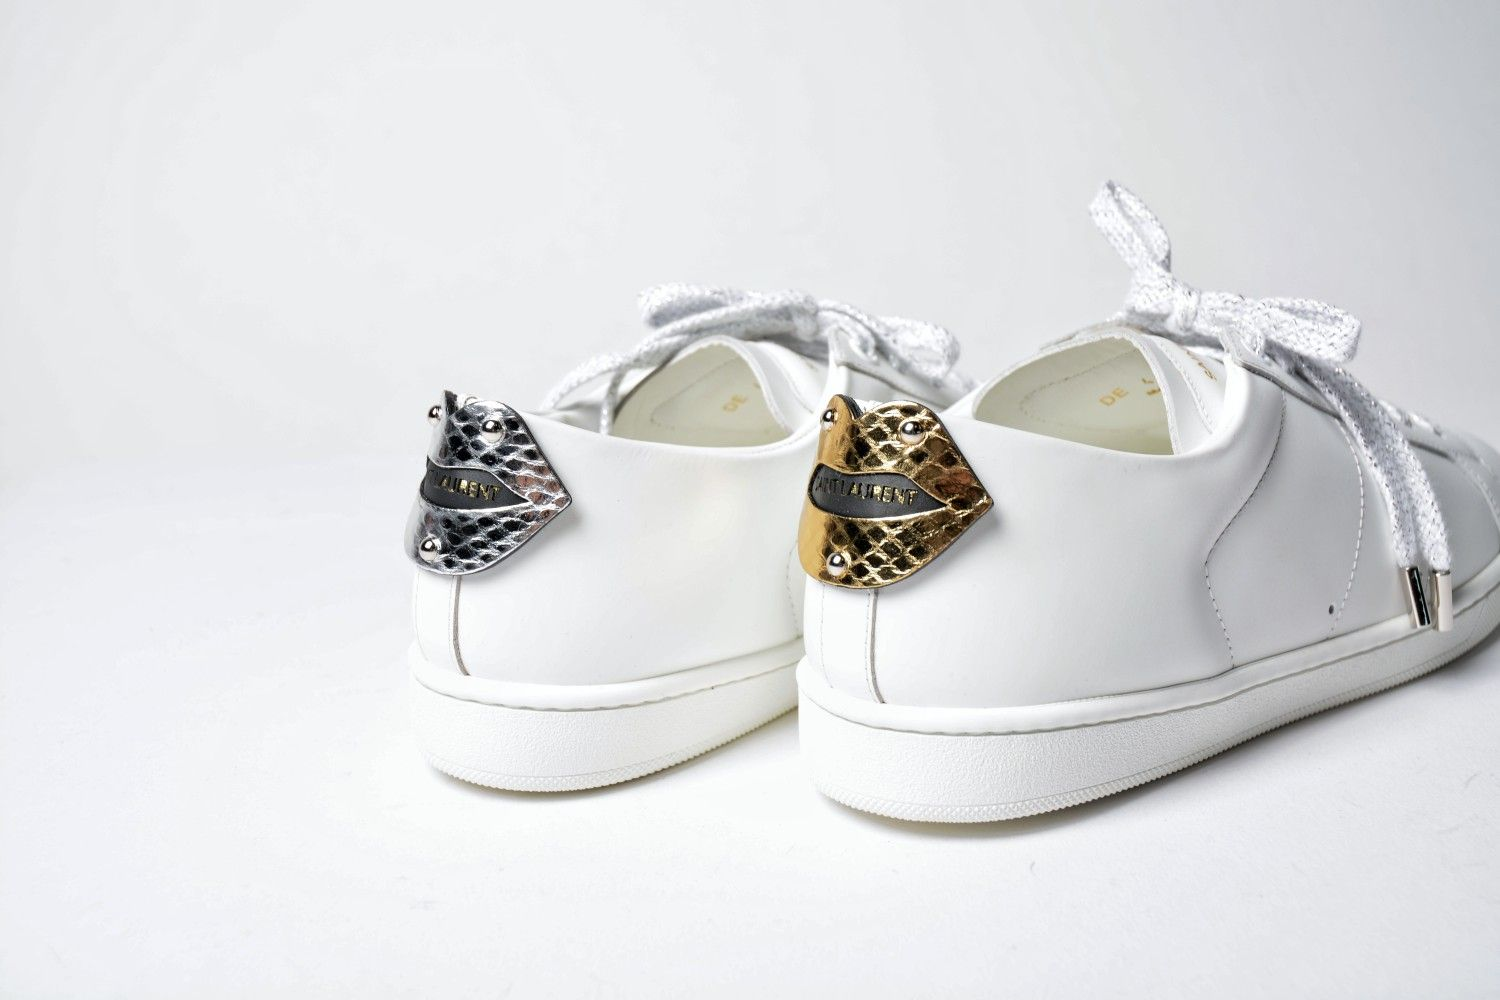 d14a705356b Saint Laurent lips sneaker gold and silver ❤ Ysl white sneaker with lips  details at the back bicolor. SPINNAKER BOUTIQUE.